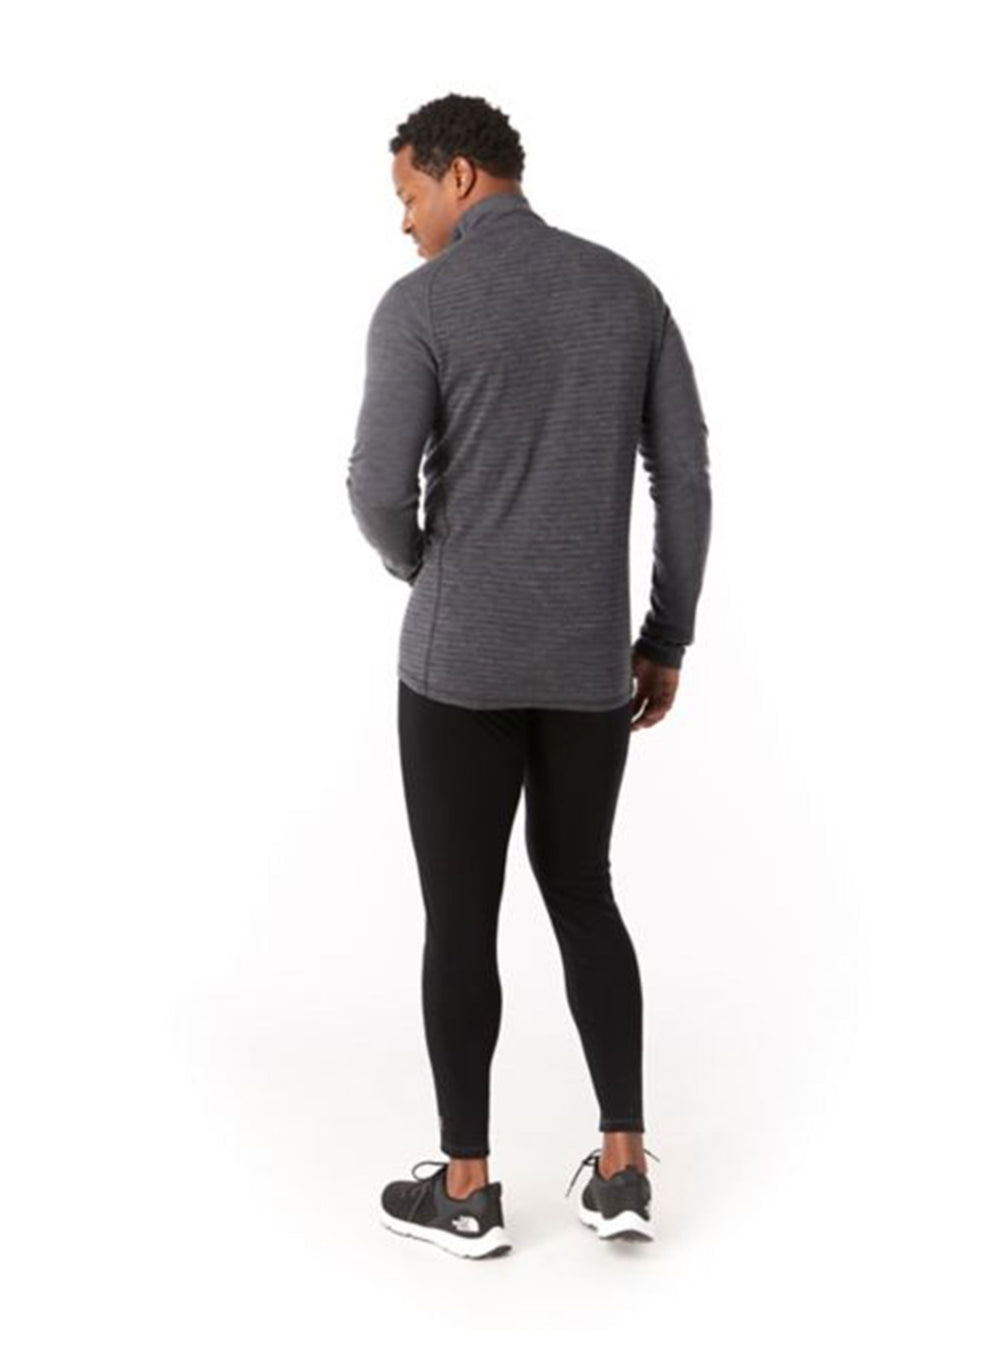 Smartwool Merino 250 Baselayer Pattern 1/4 Zip - Men's